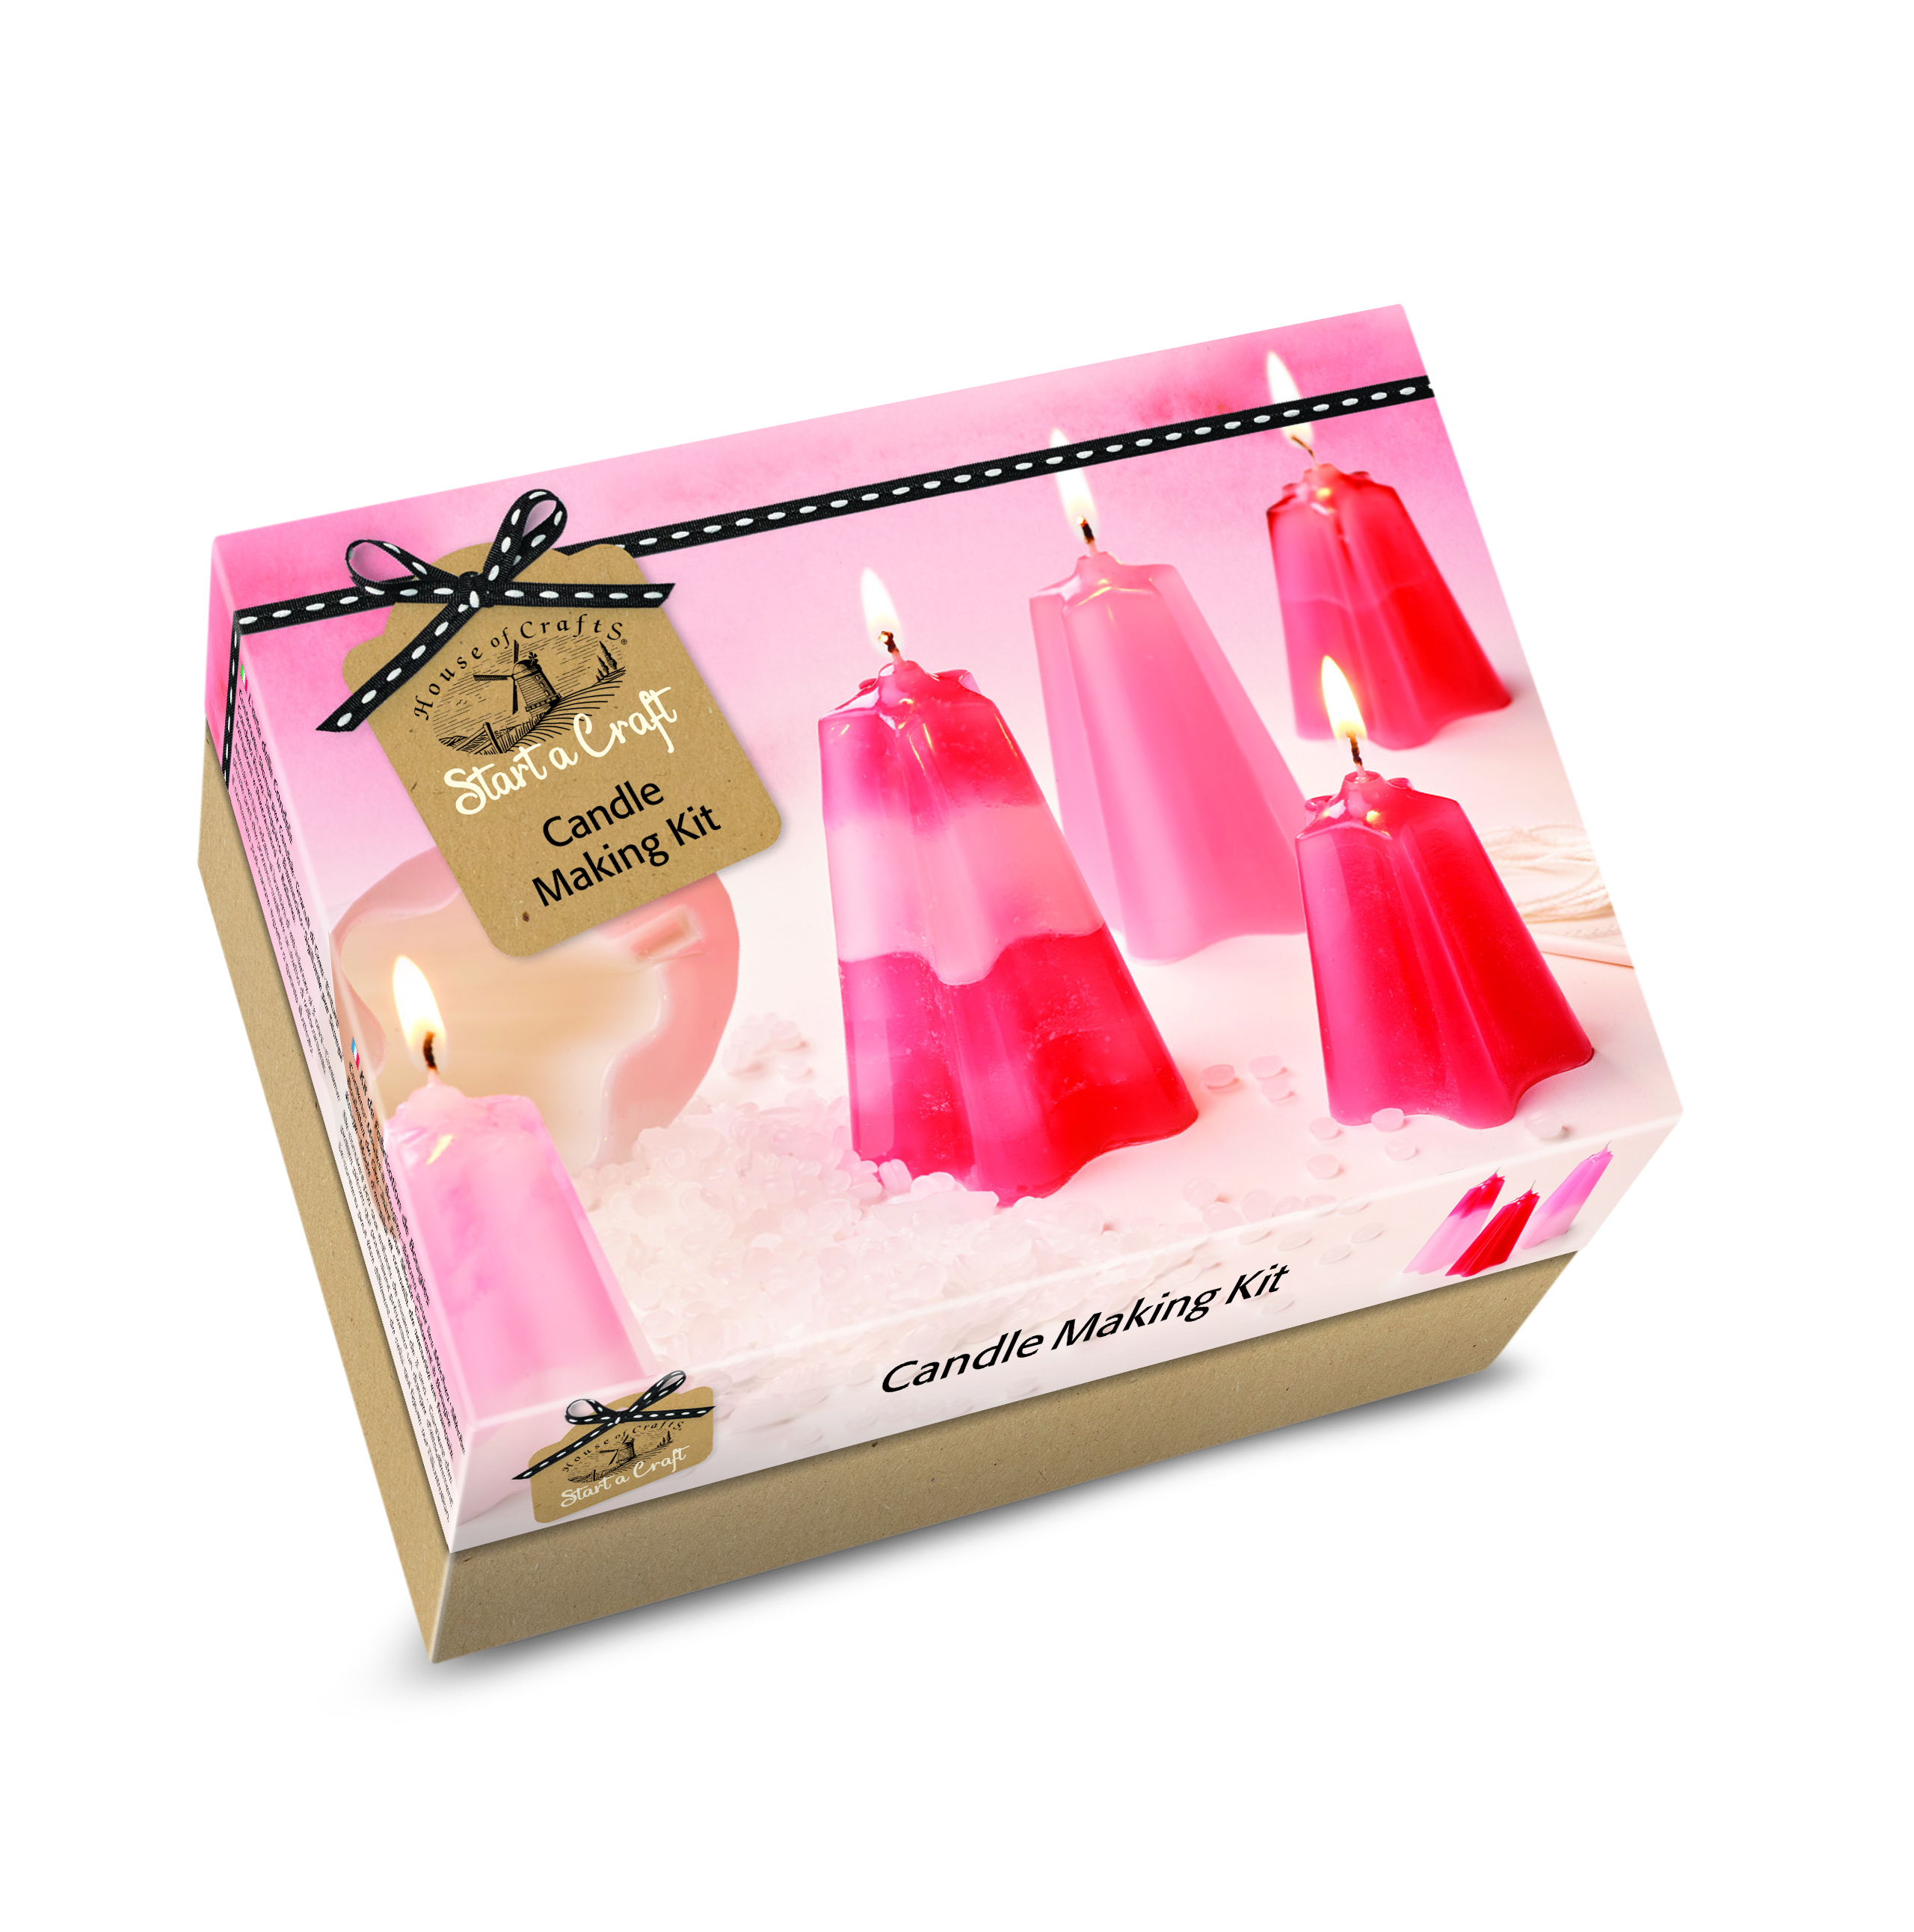 HOUSE OF CRAFTS CANDLE MAKING KIT SC010